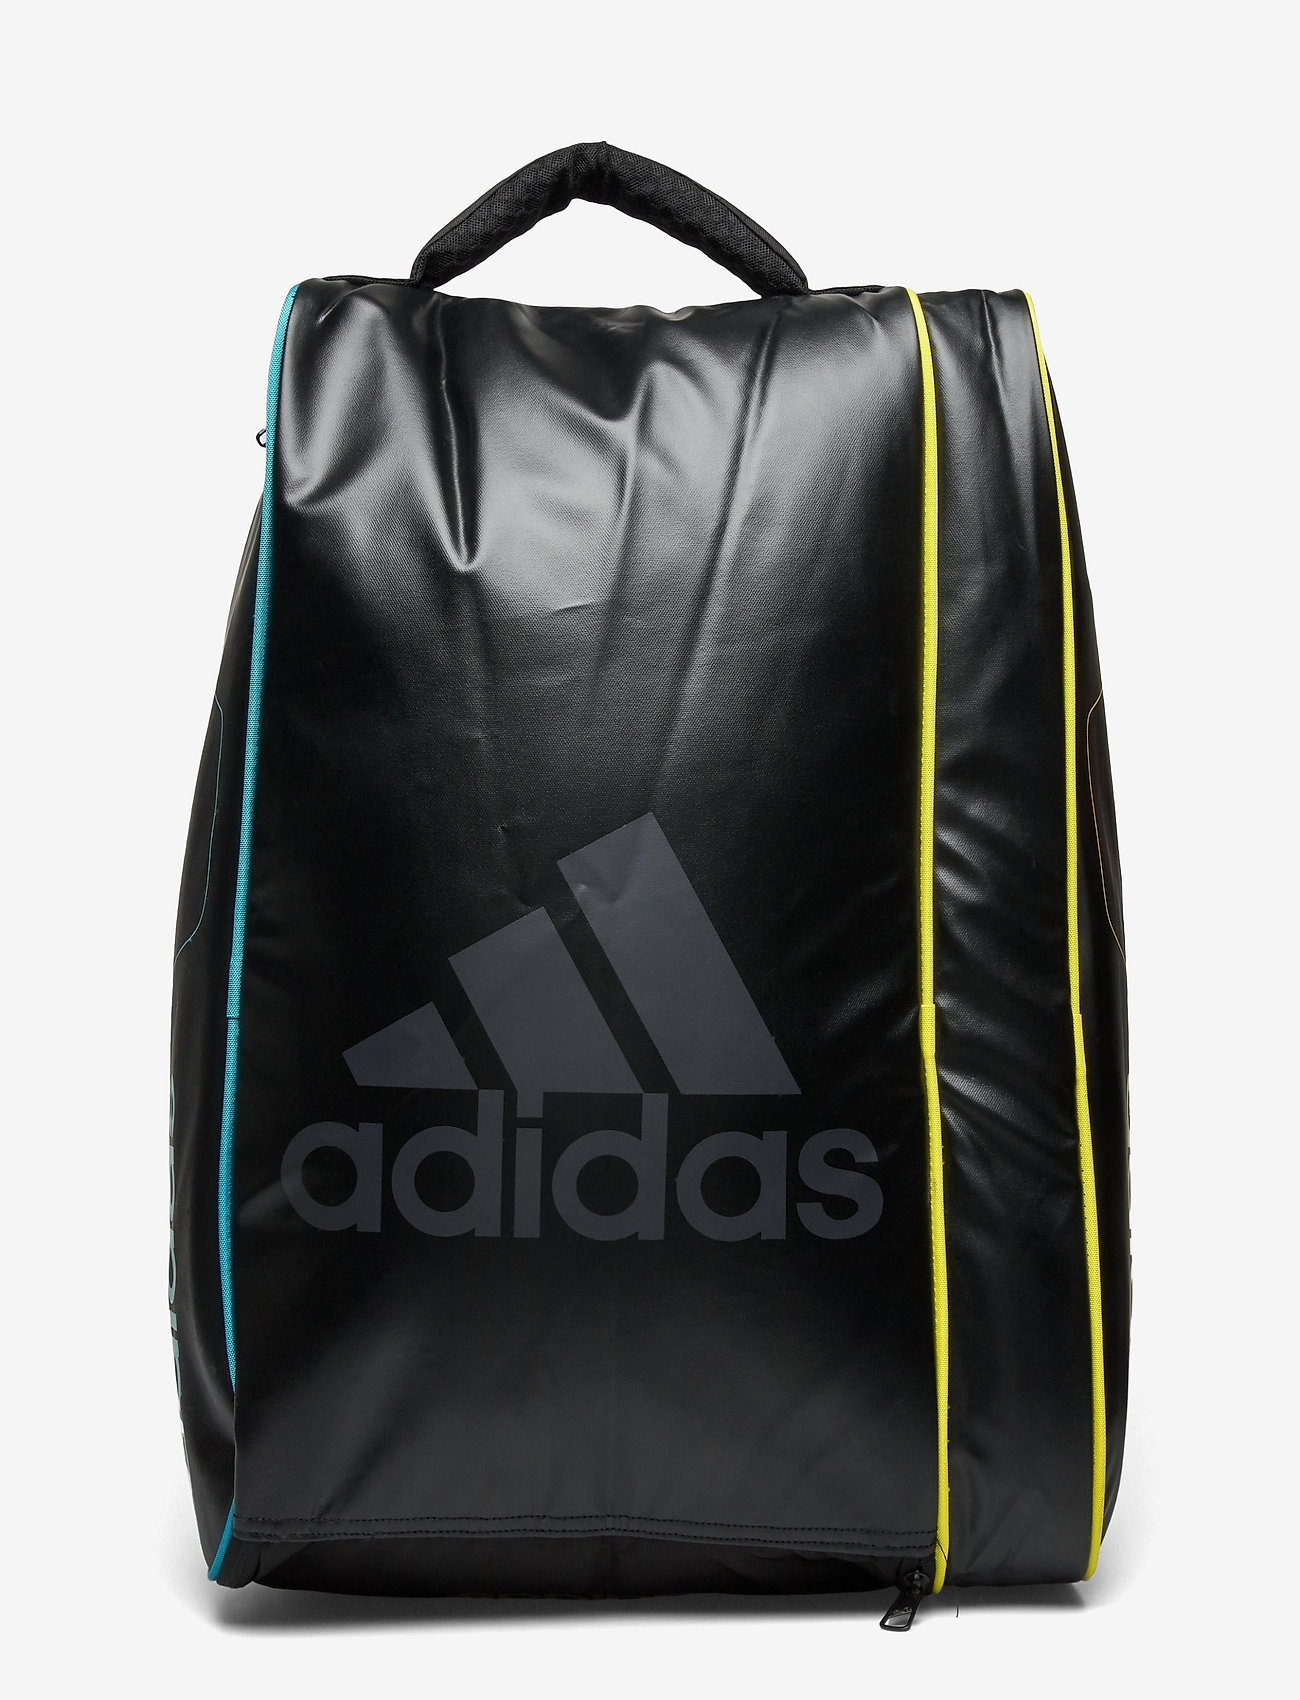 adidas Performance - Racket Bag TOUR - ketsjersporttasker - yell./blue - 0